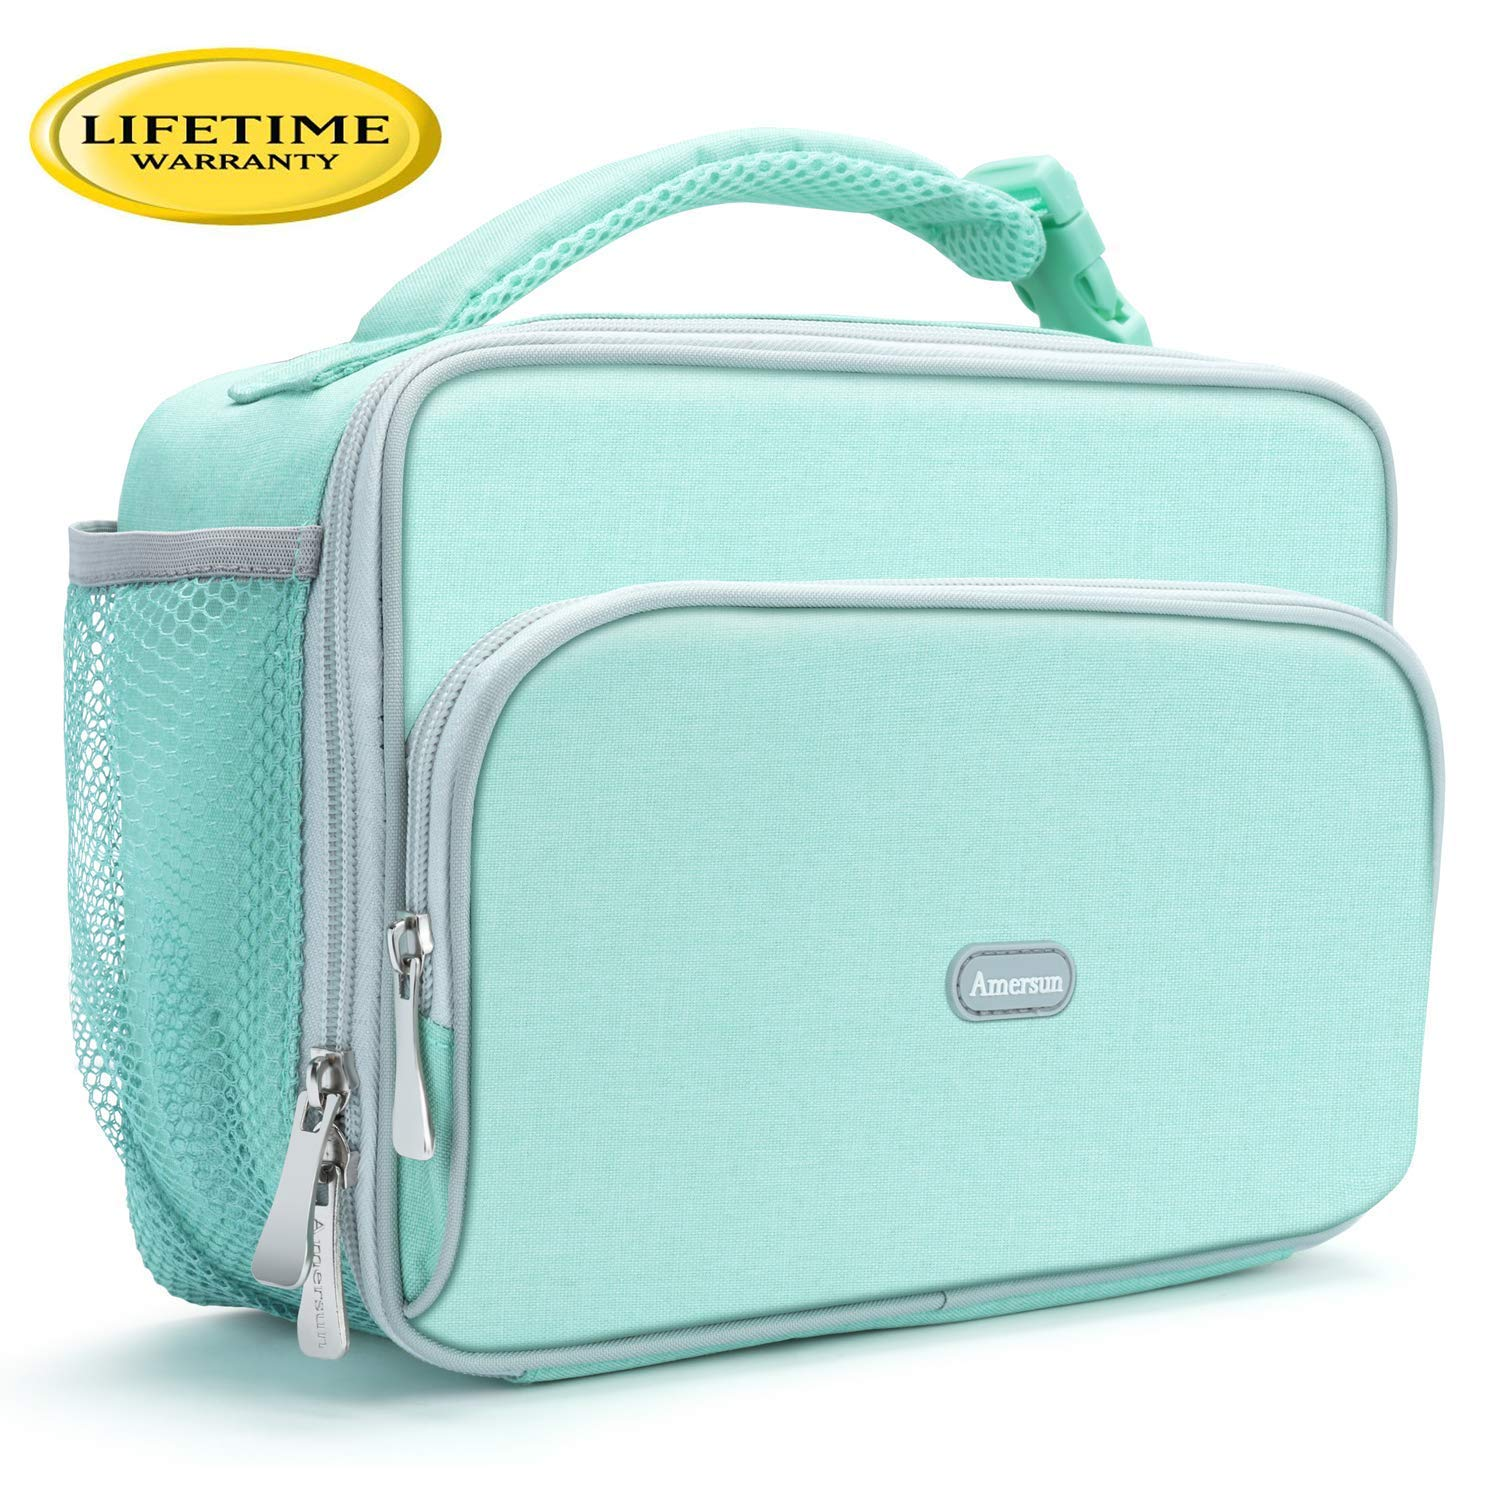 Amersun Kids Lunch Box,Durable Insulated School Lunch Bag with Padded Liner Keep Food Hot Cold for Long Time,Small Water-resistant Thermal Travel Office Lunch Cooler for Girls Boys-2 Pocket,Light Blue by Amersun